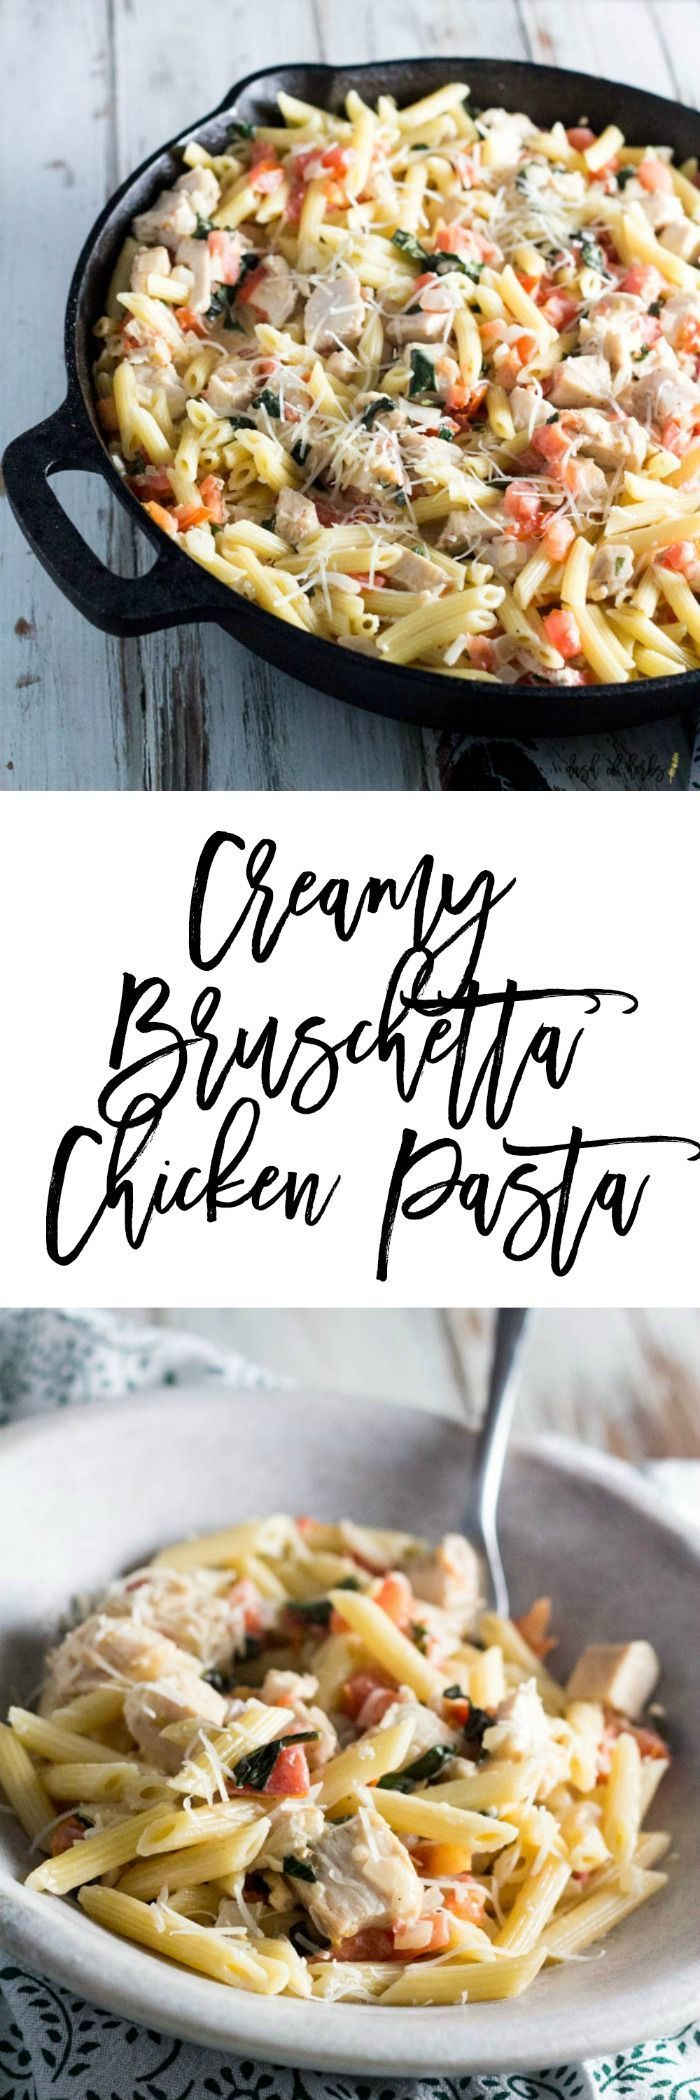 Creamy Bruschetta Chicken Pasta - If you crave a creamy pasta dish, you need to try this delicious creamy Bruschetta chicken pasta recipe. This dish is quick to make and will please your whole family. This recipe is only 5 SmartPoints on Weight Watchers per serving, 1 cup. #pastafoodrecipes